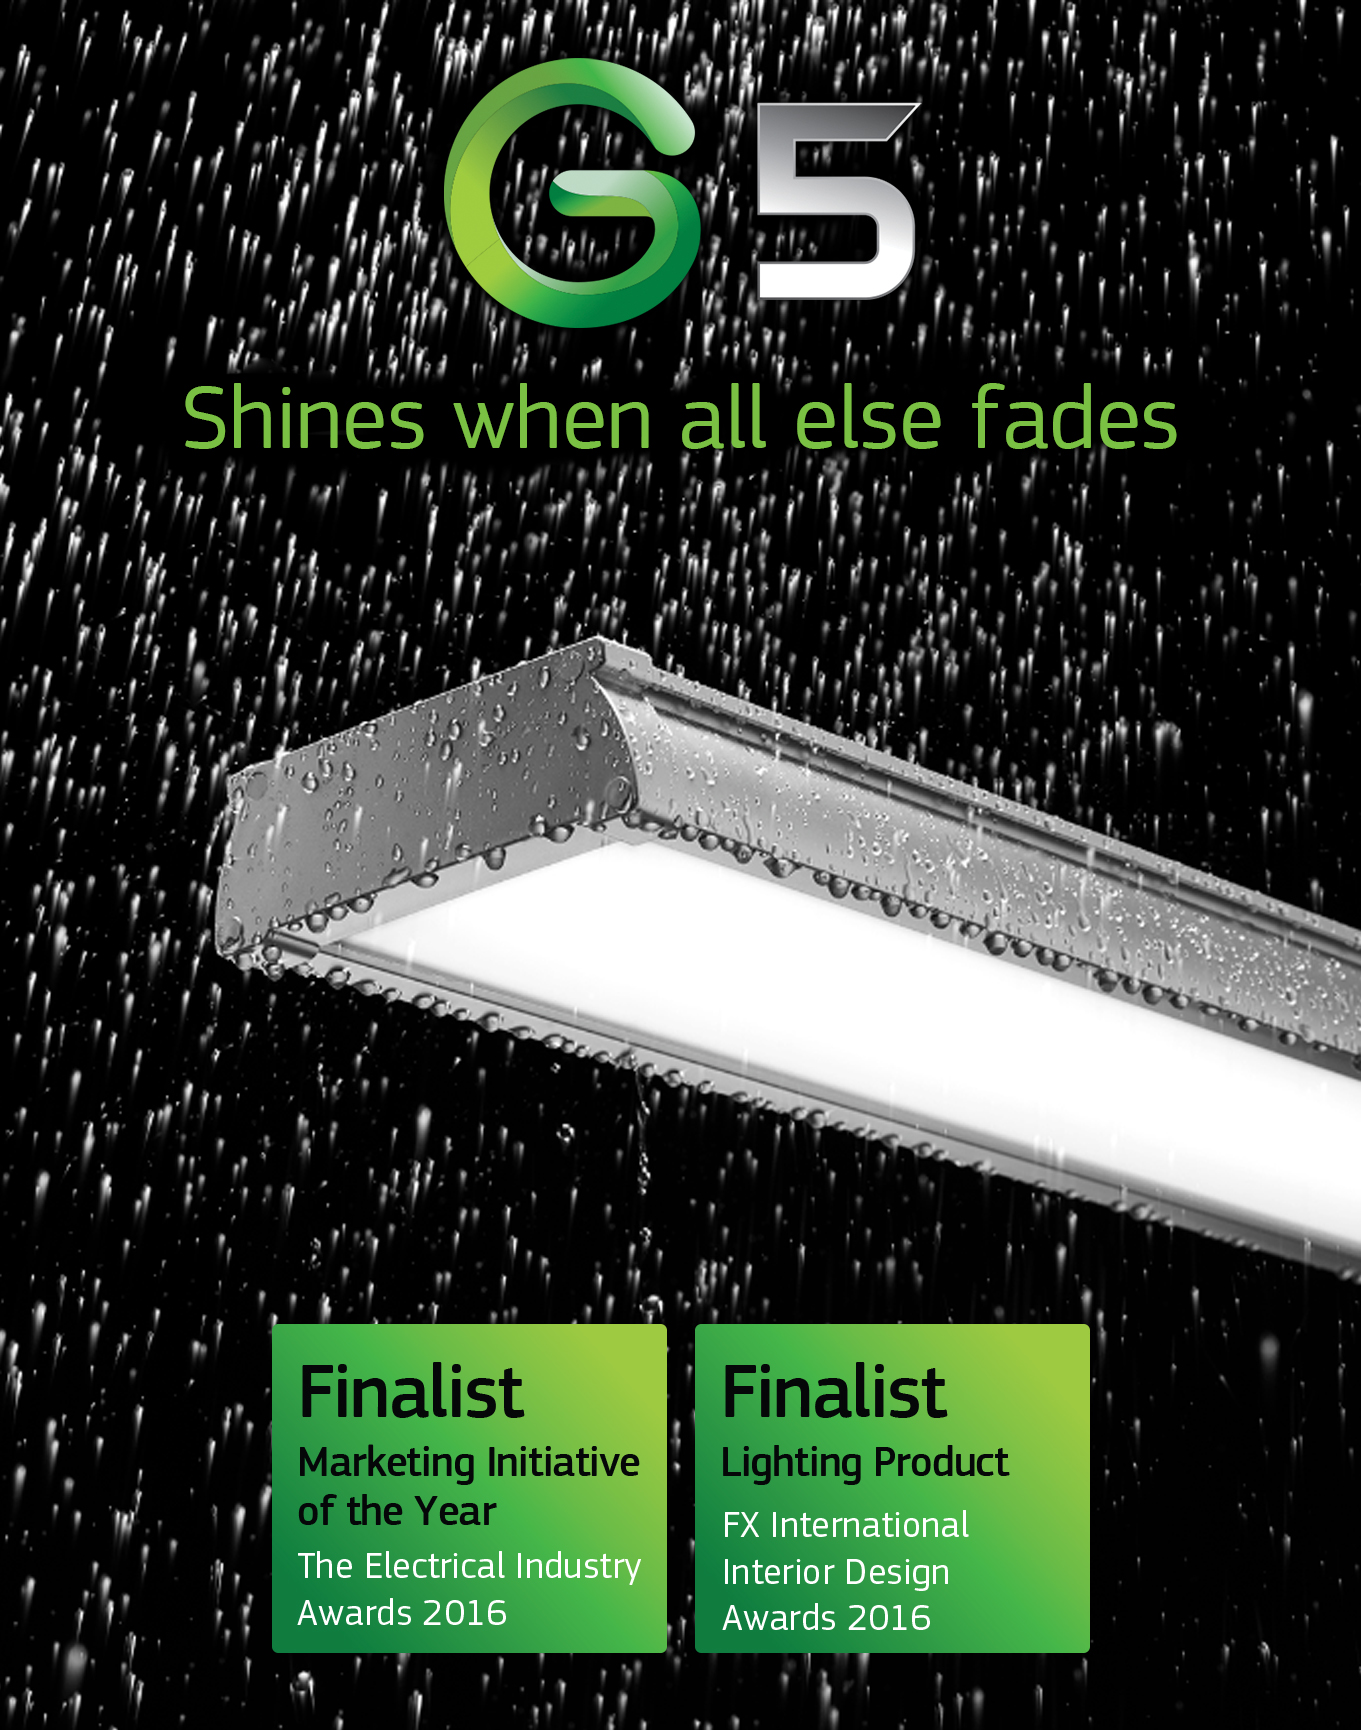 Goodlight-g5-led-batten-shortlisted-for-2-awards